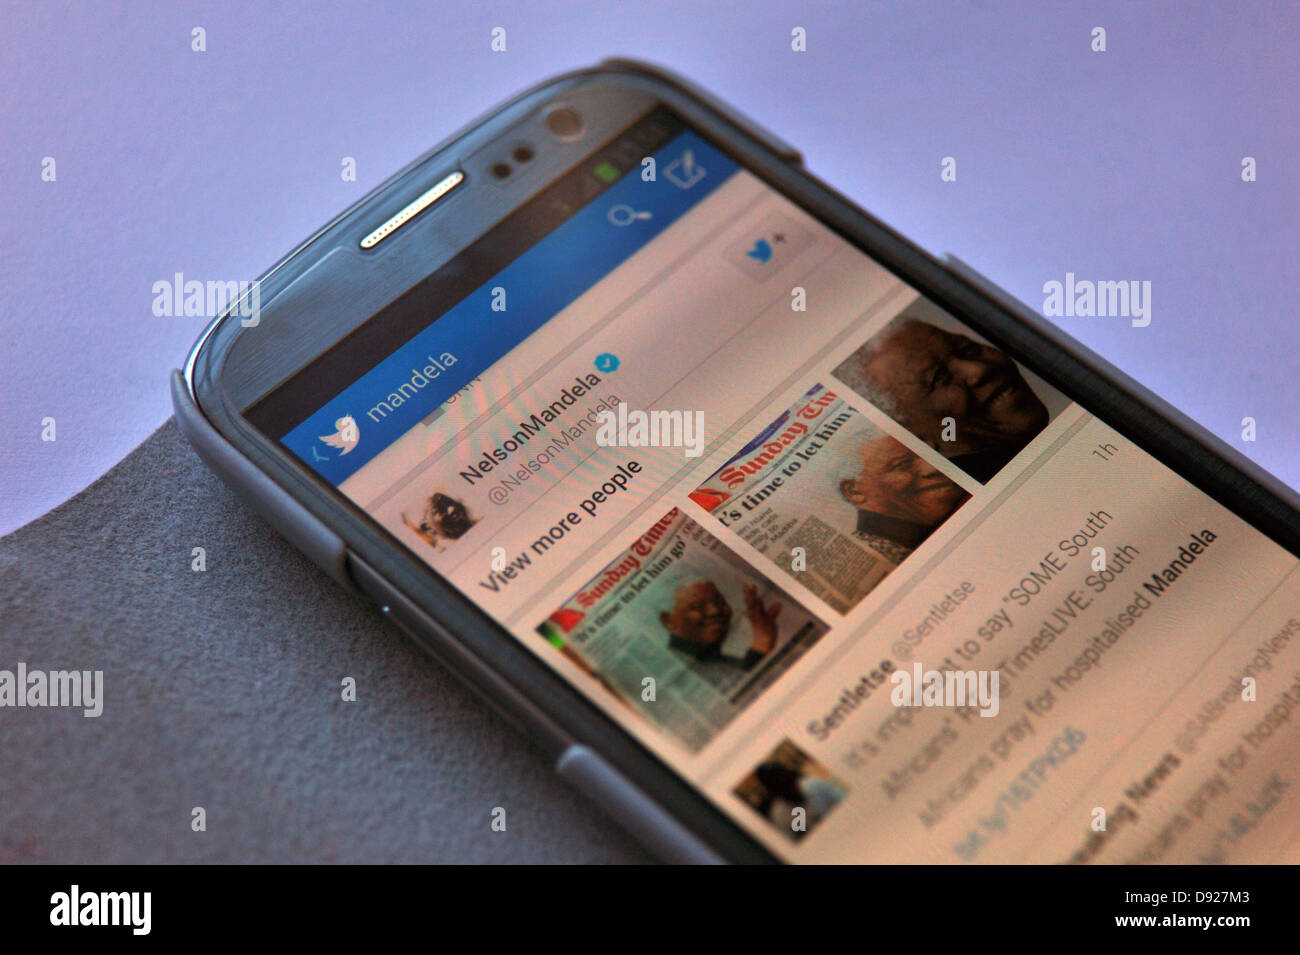 Images of twitter on a smart phone screen with messages regarding the illness of former South African President - Stock Image